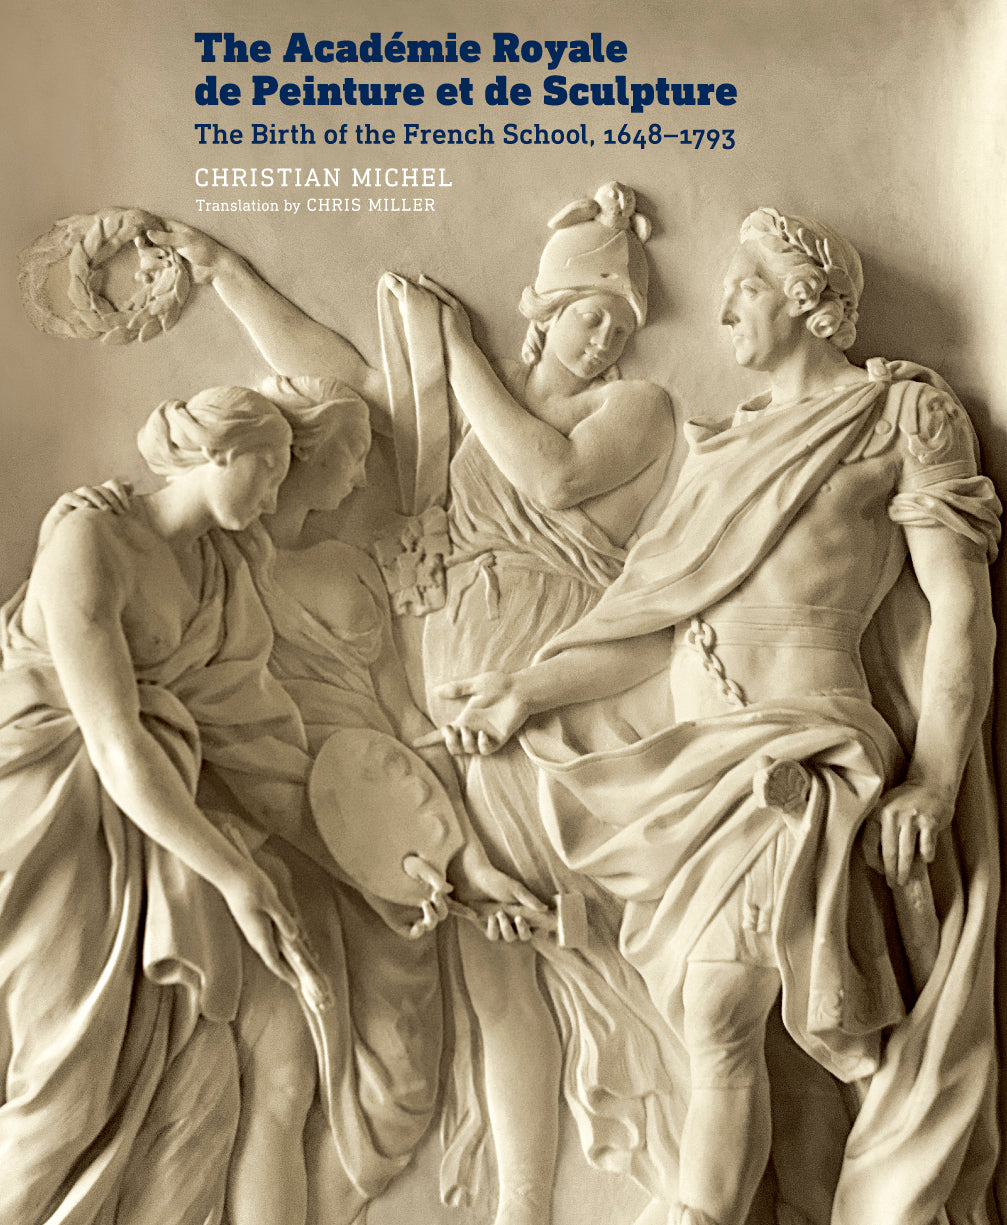 The Académie Royale de Peinture et de Sculpture: The Birth of the French School, 1648–1793 | Getty Store